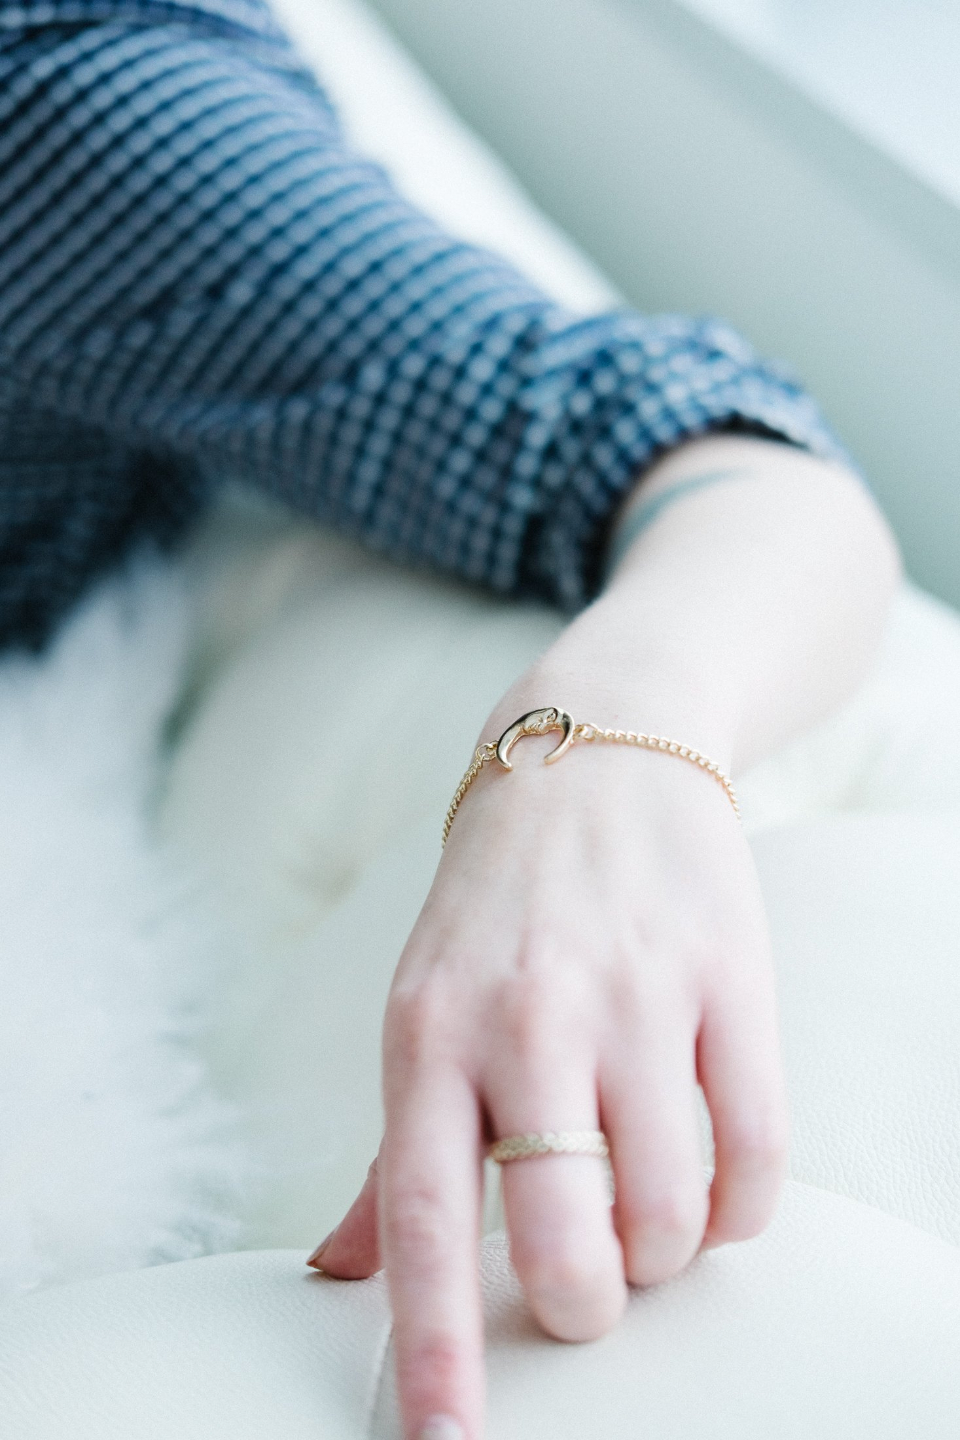 woman hand bracelet ring fashion female arm body finger detail model jewelry casual person